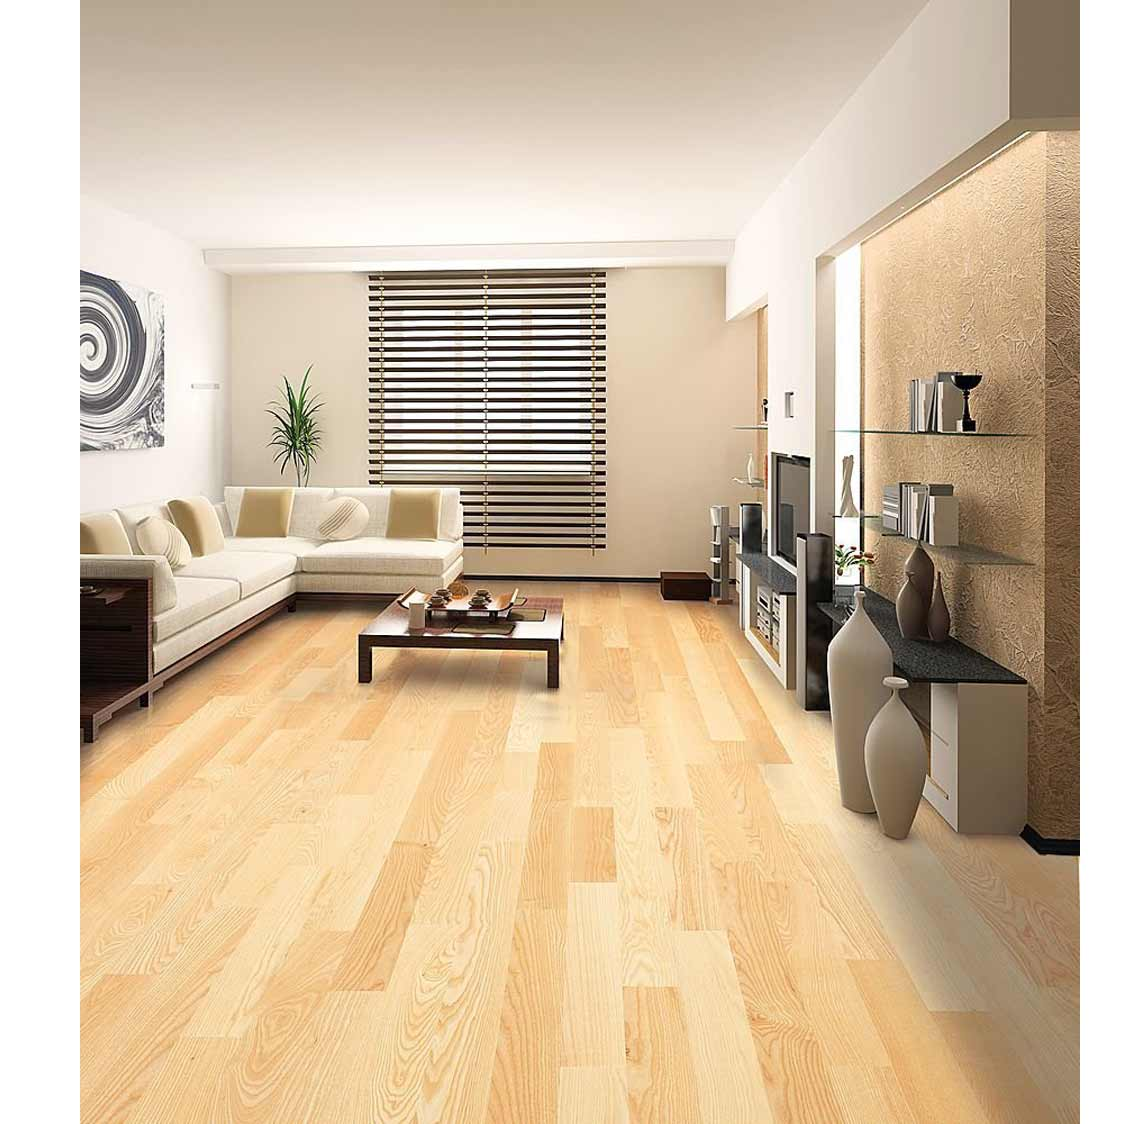 Yazco modern natural hardwood carpet design